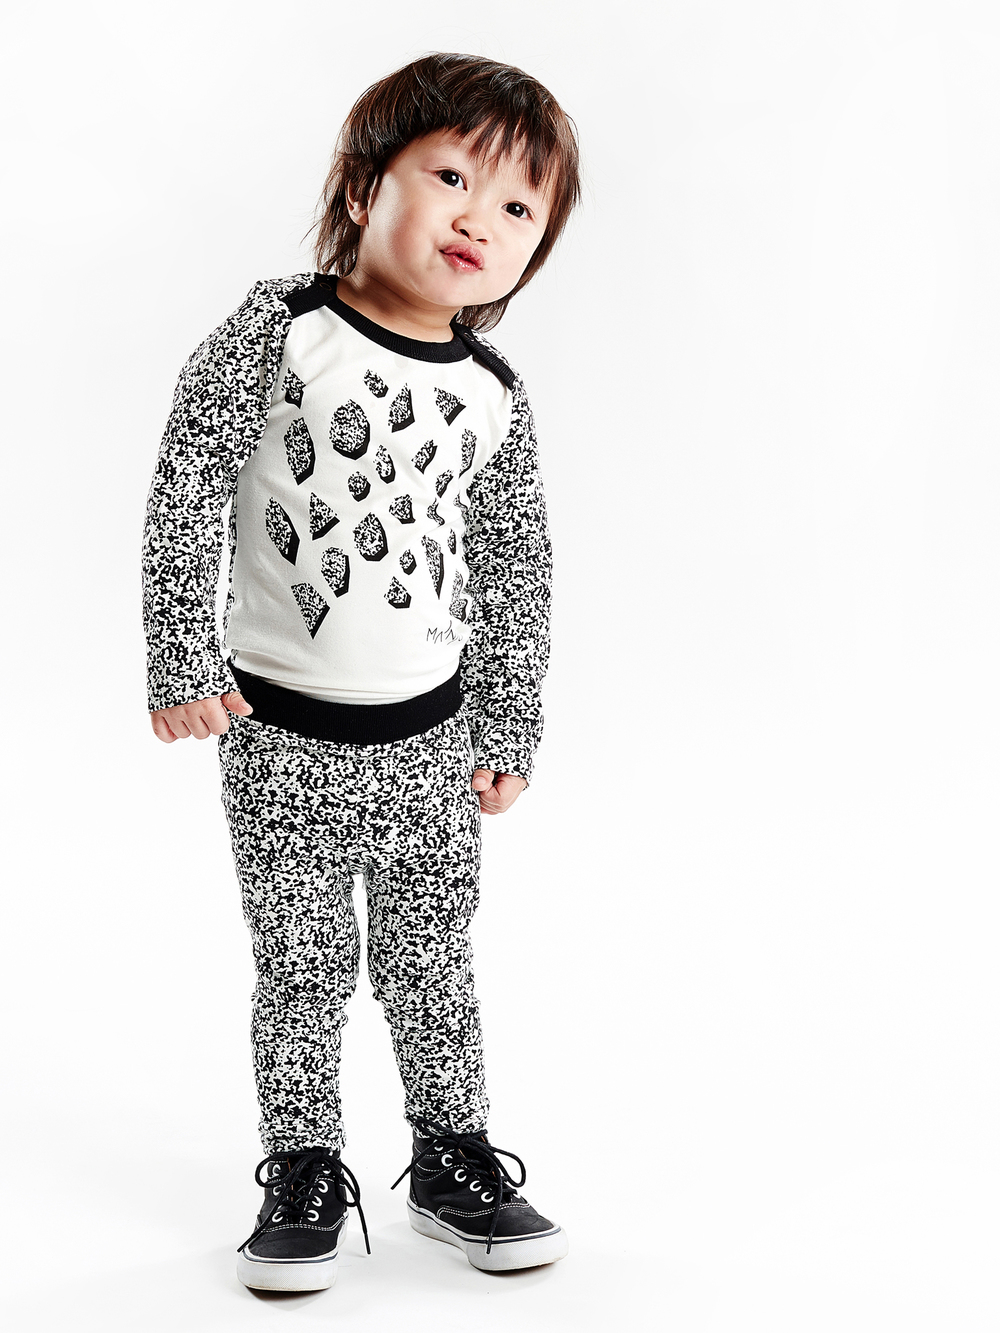 Babies Lohkare bodysuit and Soranen leggings.jpg